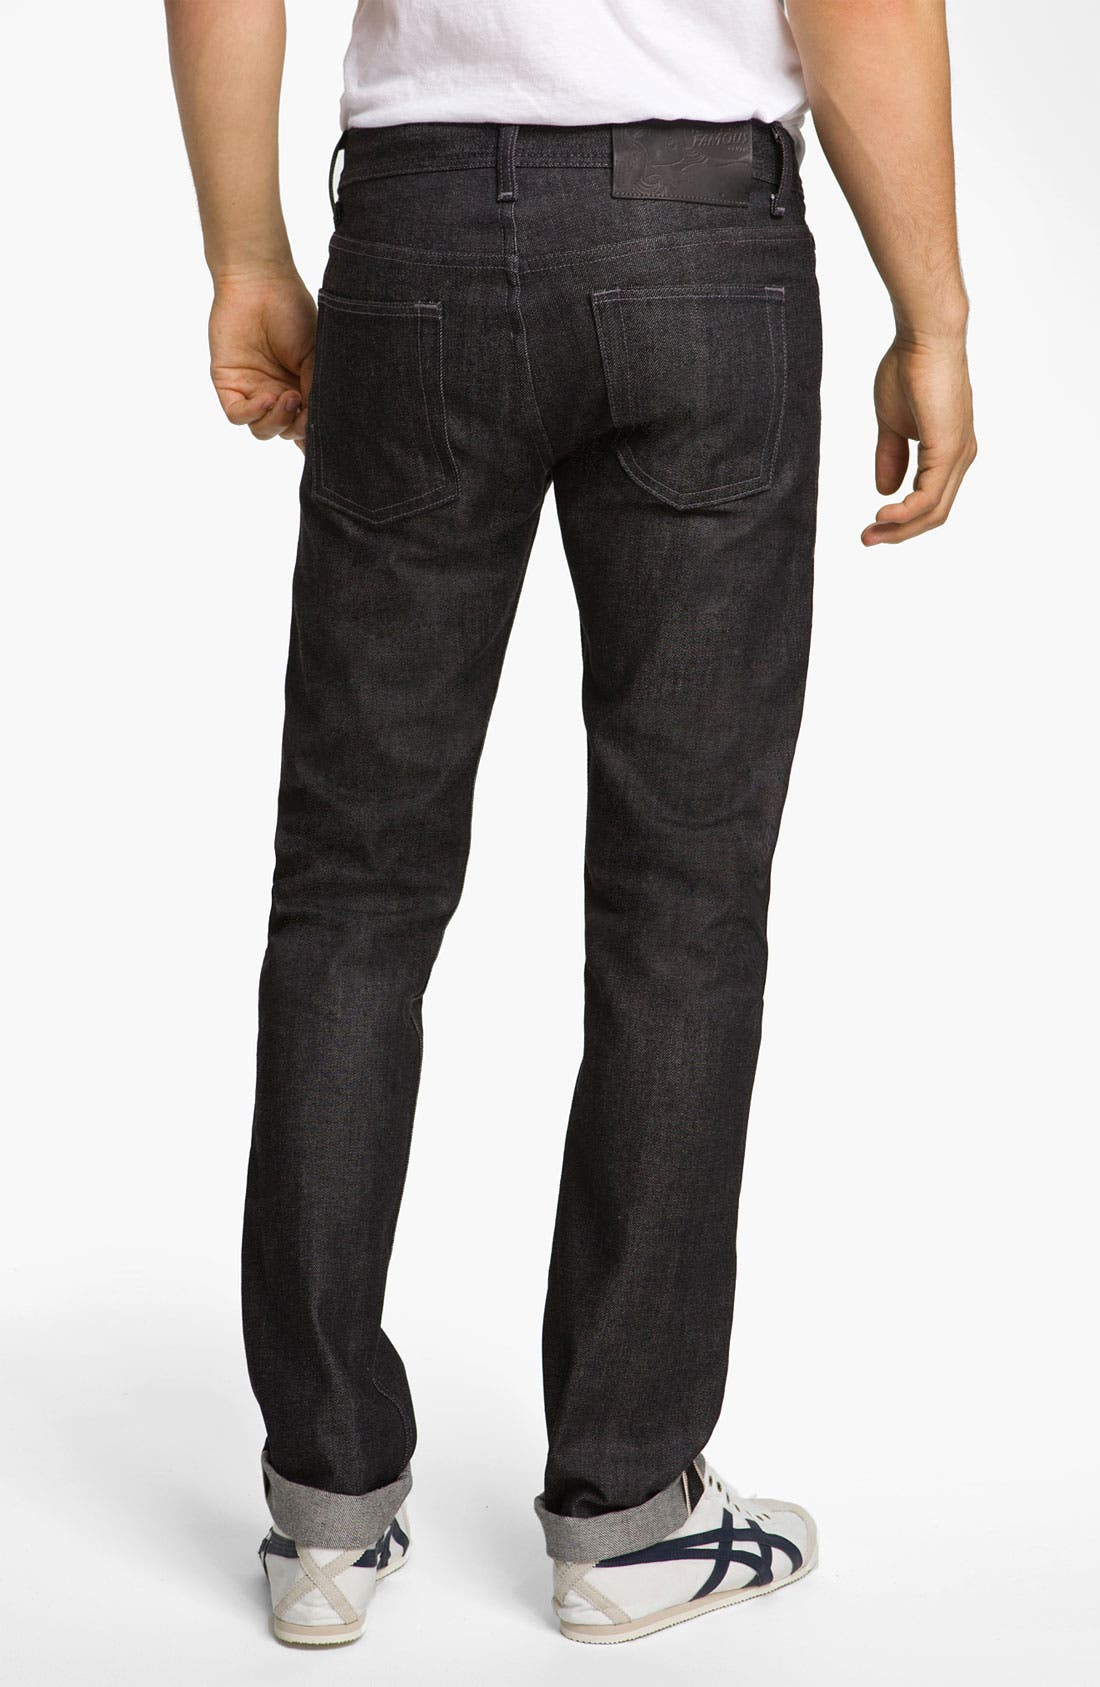 Alternate Image 1 Selected - Naked & Famous Denim 'Weird Guy' Slim Fit Selvedge Jeans (Black)